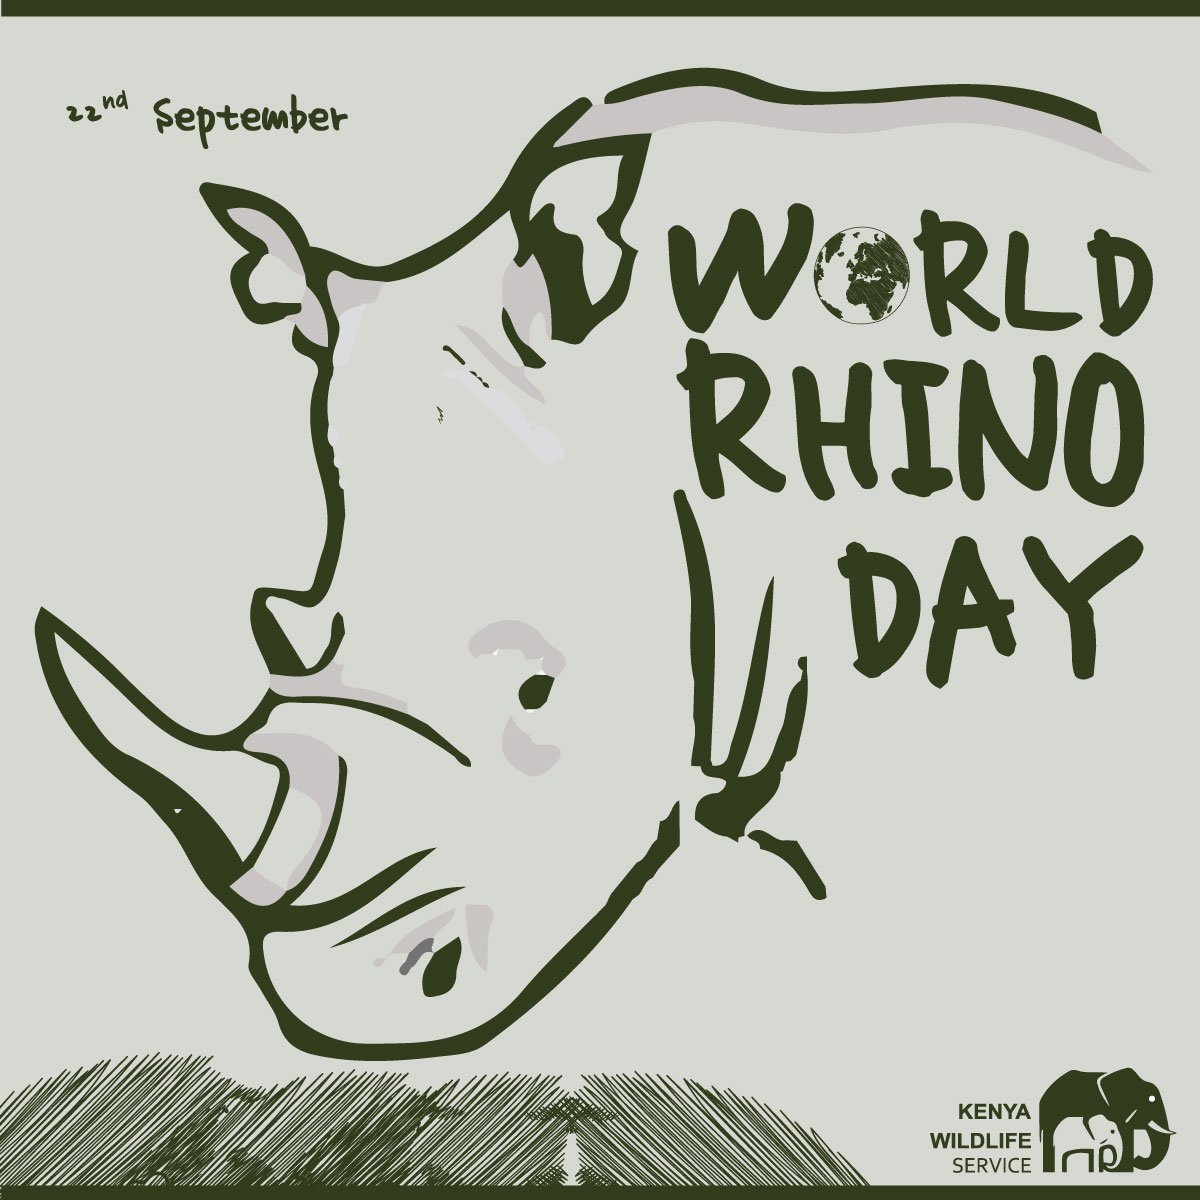 Today we celebrate #WorldRhinoDay.. https://t.co/6g2KBLcuV1